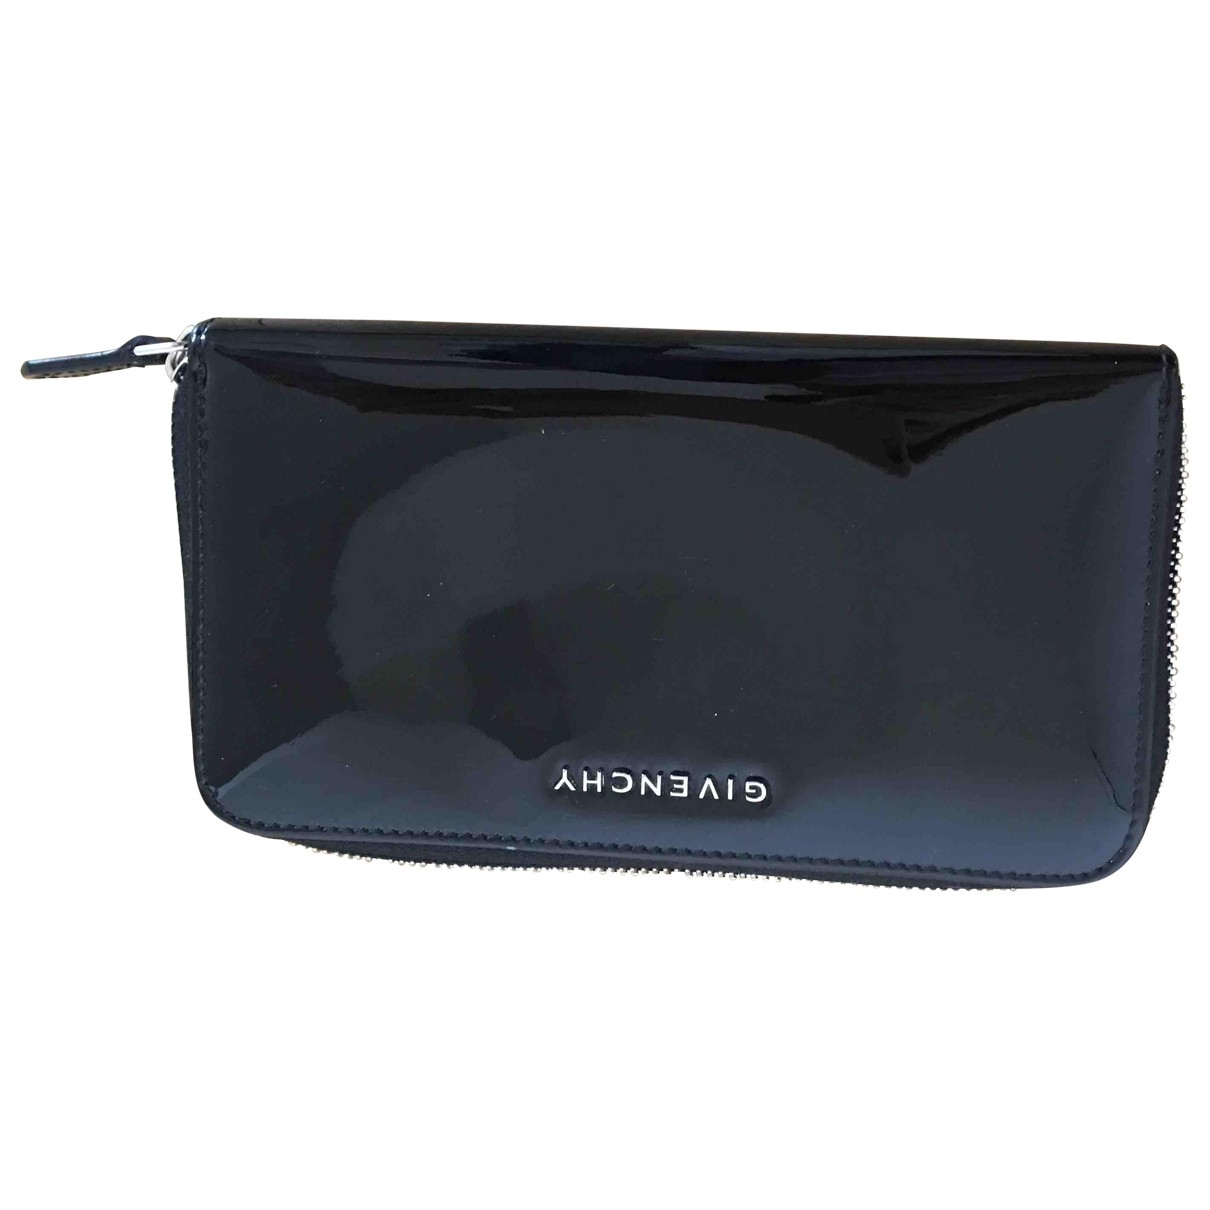 Givenchy \N Black Patent leather wallet for Women \N